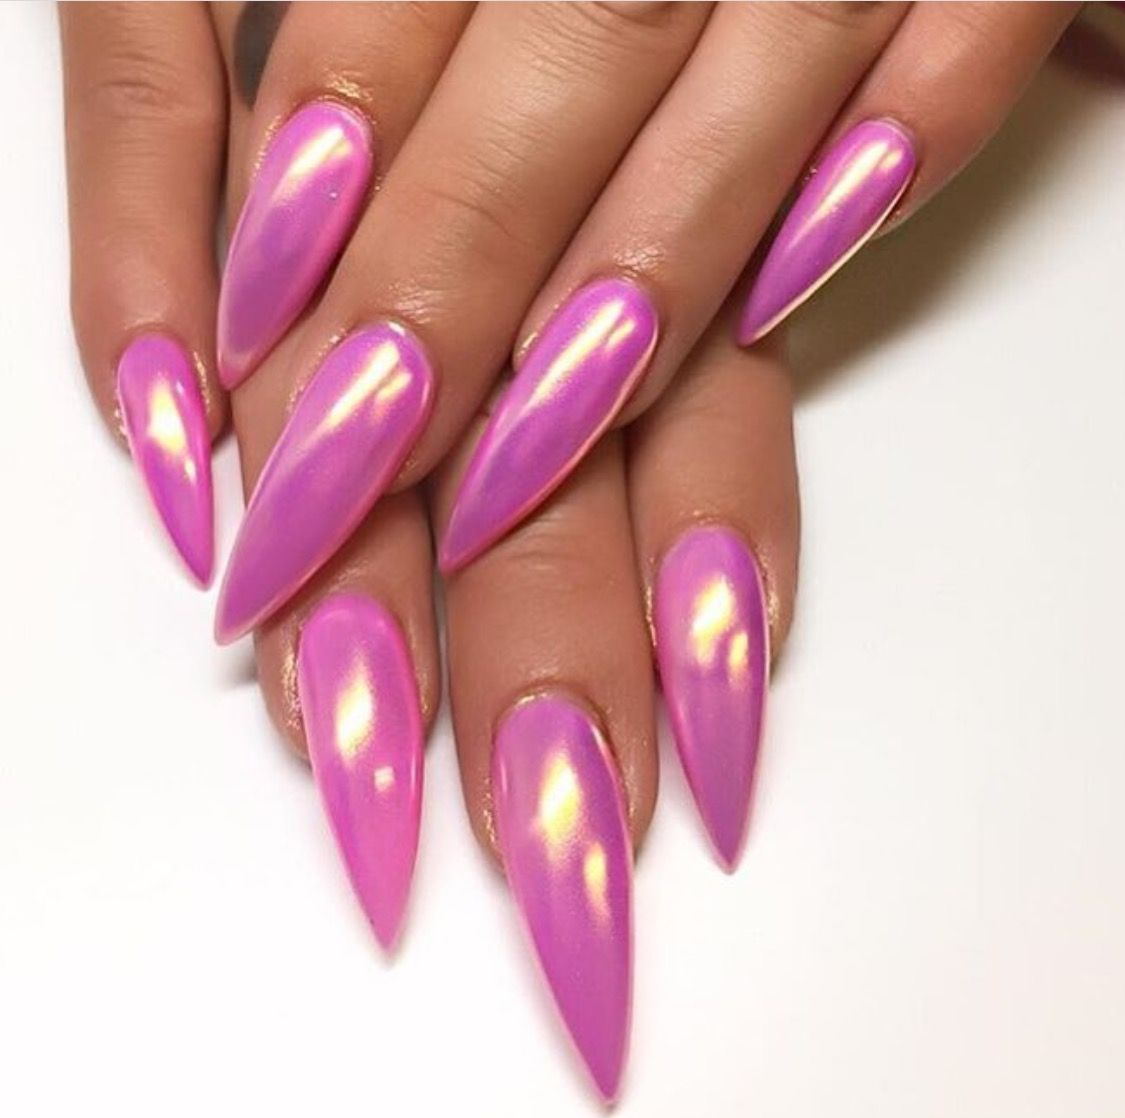 ♚♛нσυѕтσиqυєєивяι♛♚ | иαιℓѕ | Pinterest | Natural nails, Nails ...